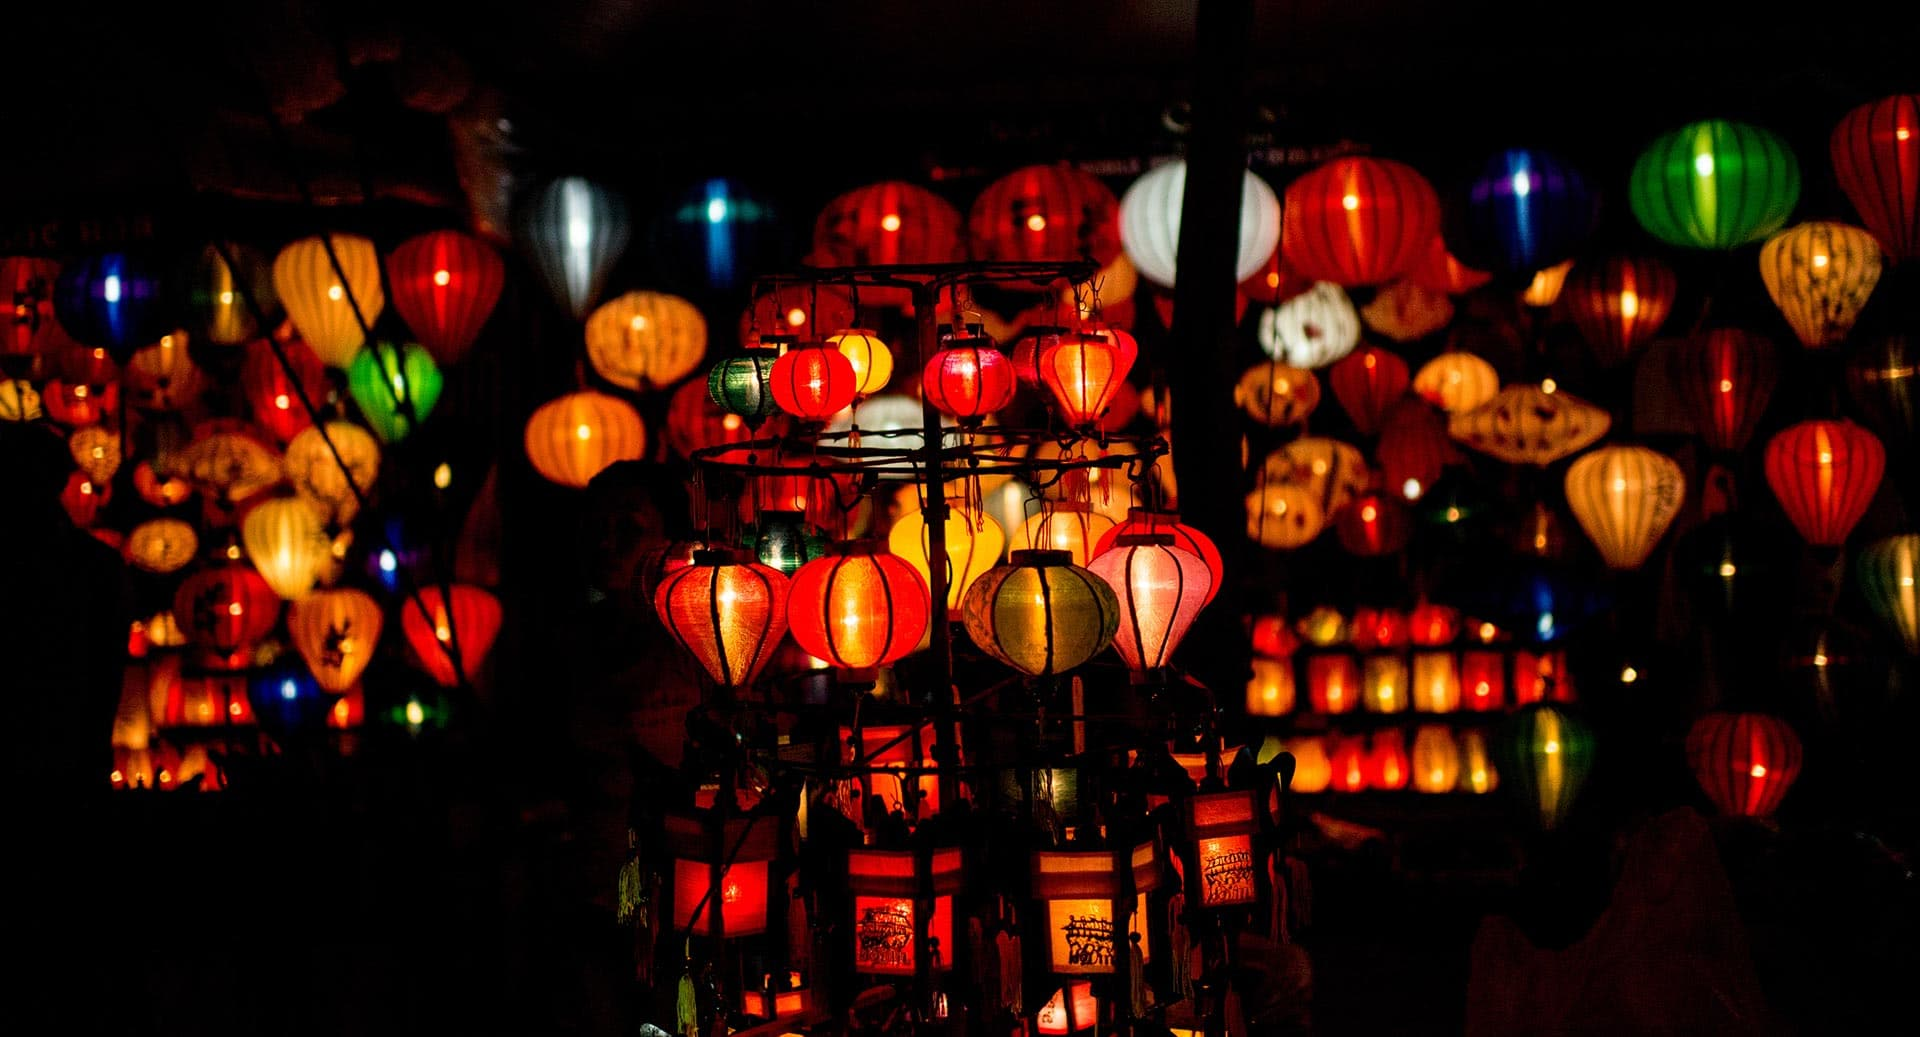 Hoi An Ancient Town Named as One of Asia's Most Beautiful Towns by CNN Travel